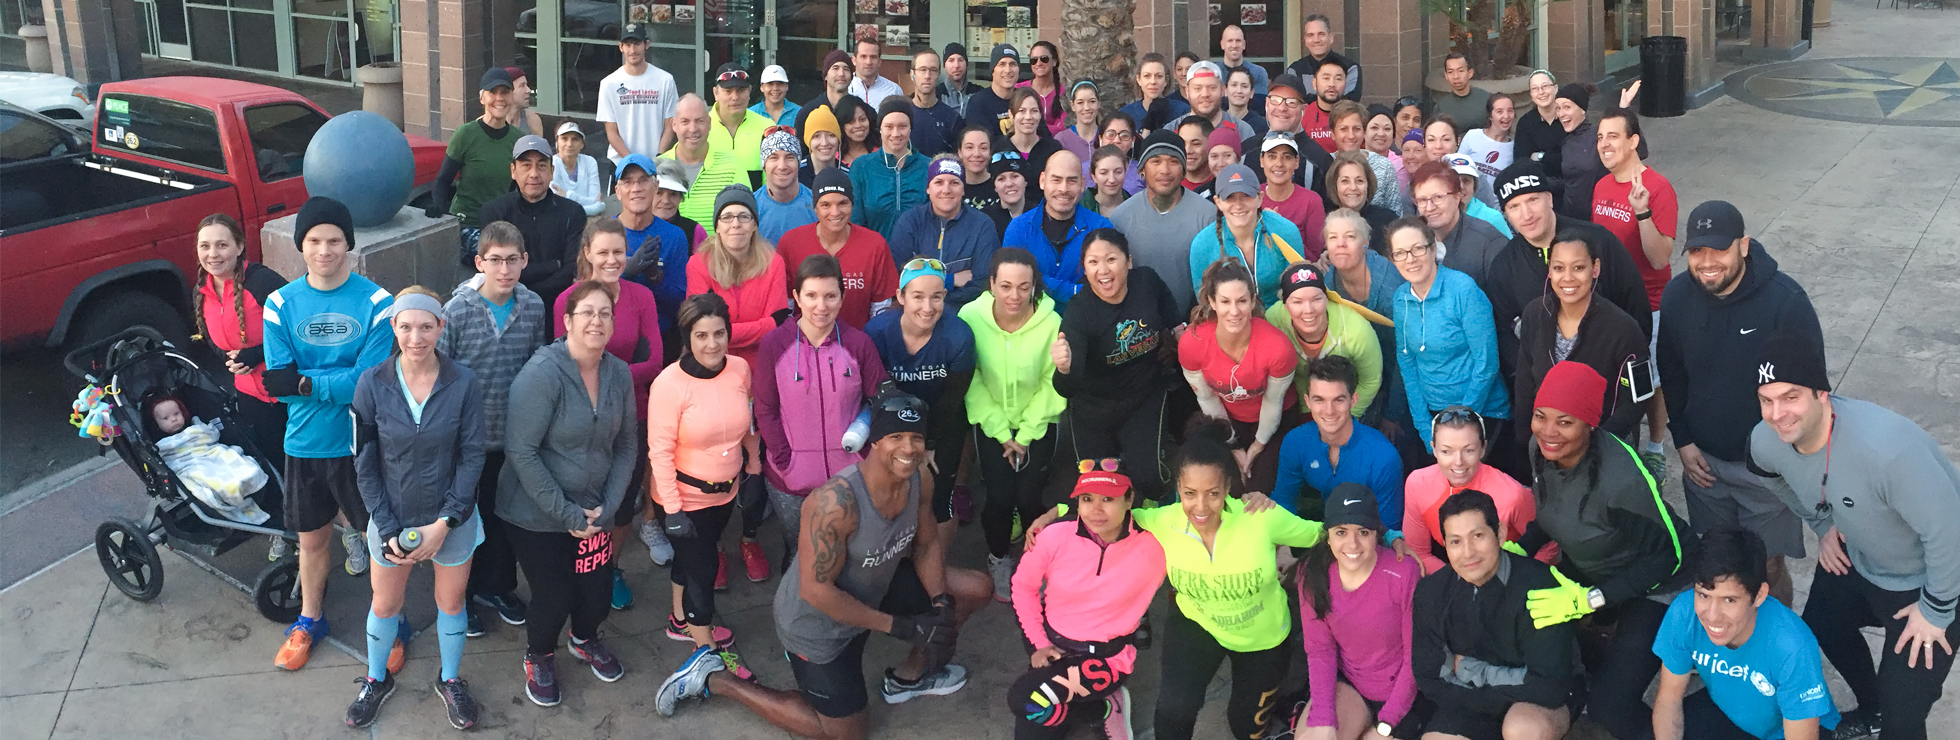 Join the Las Vegas Runners Club